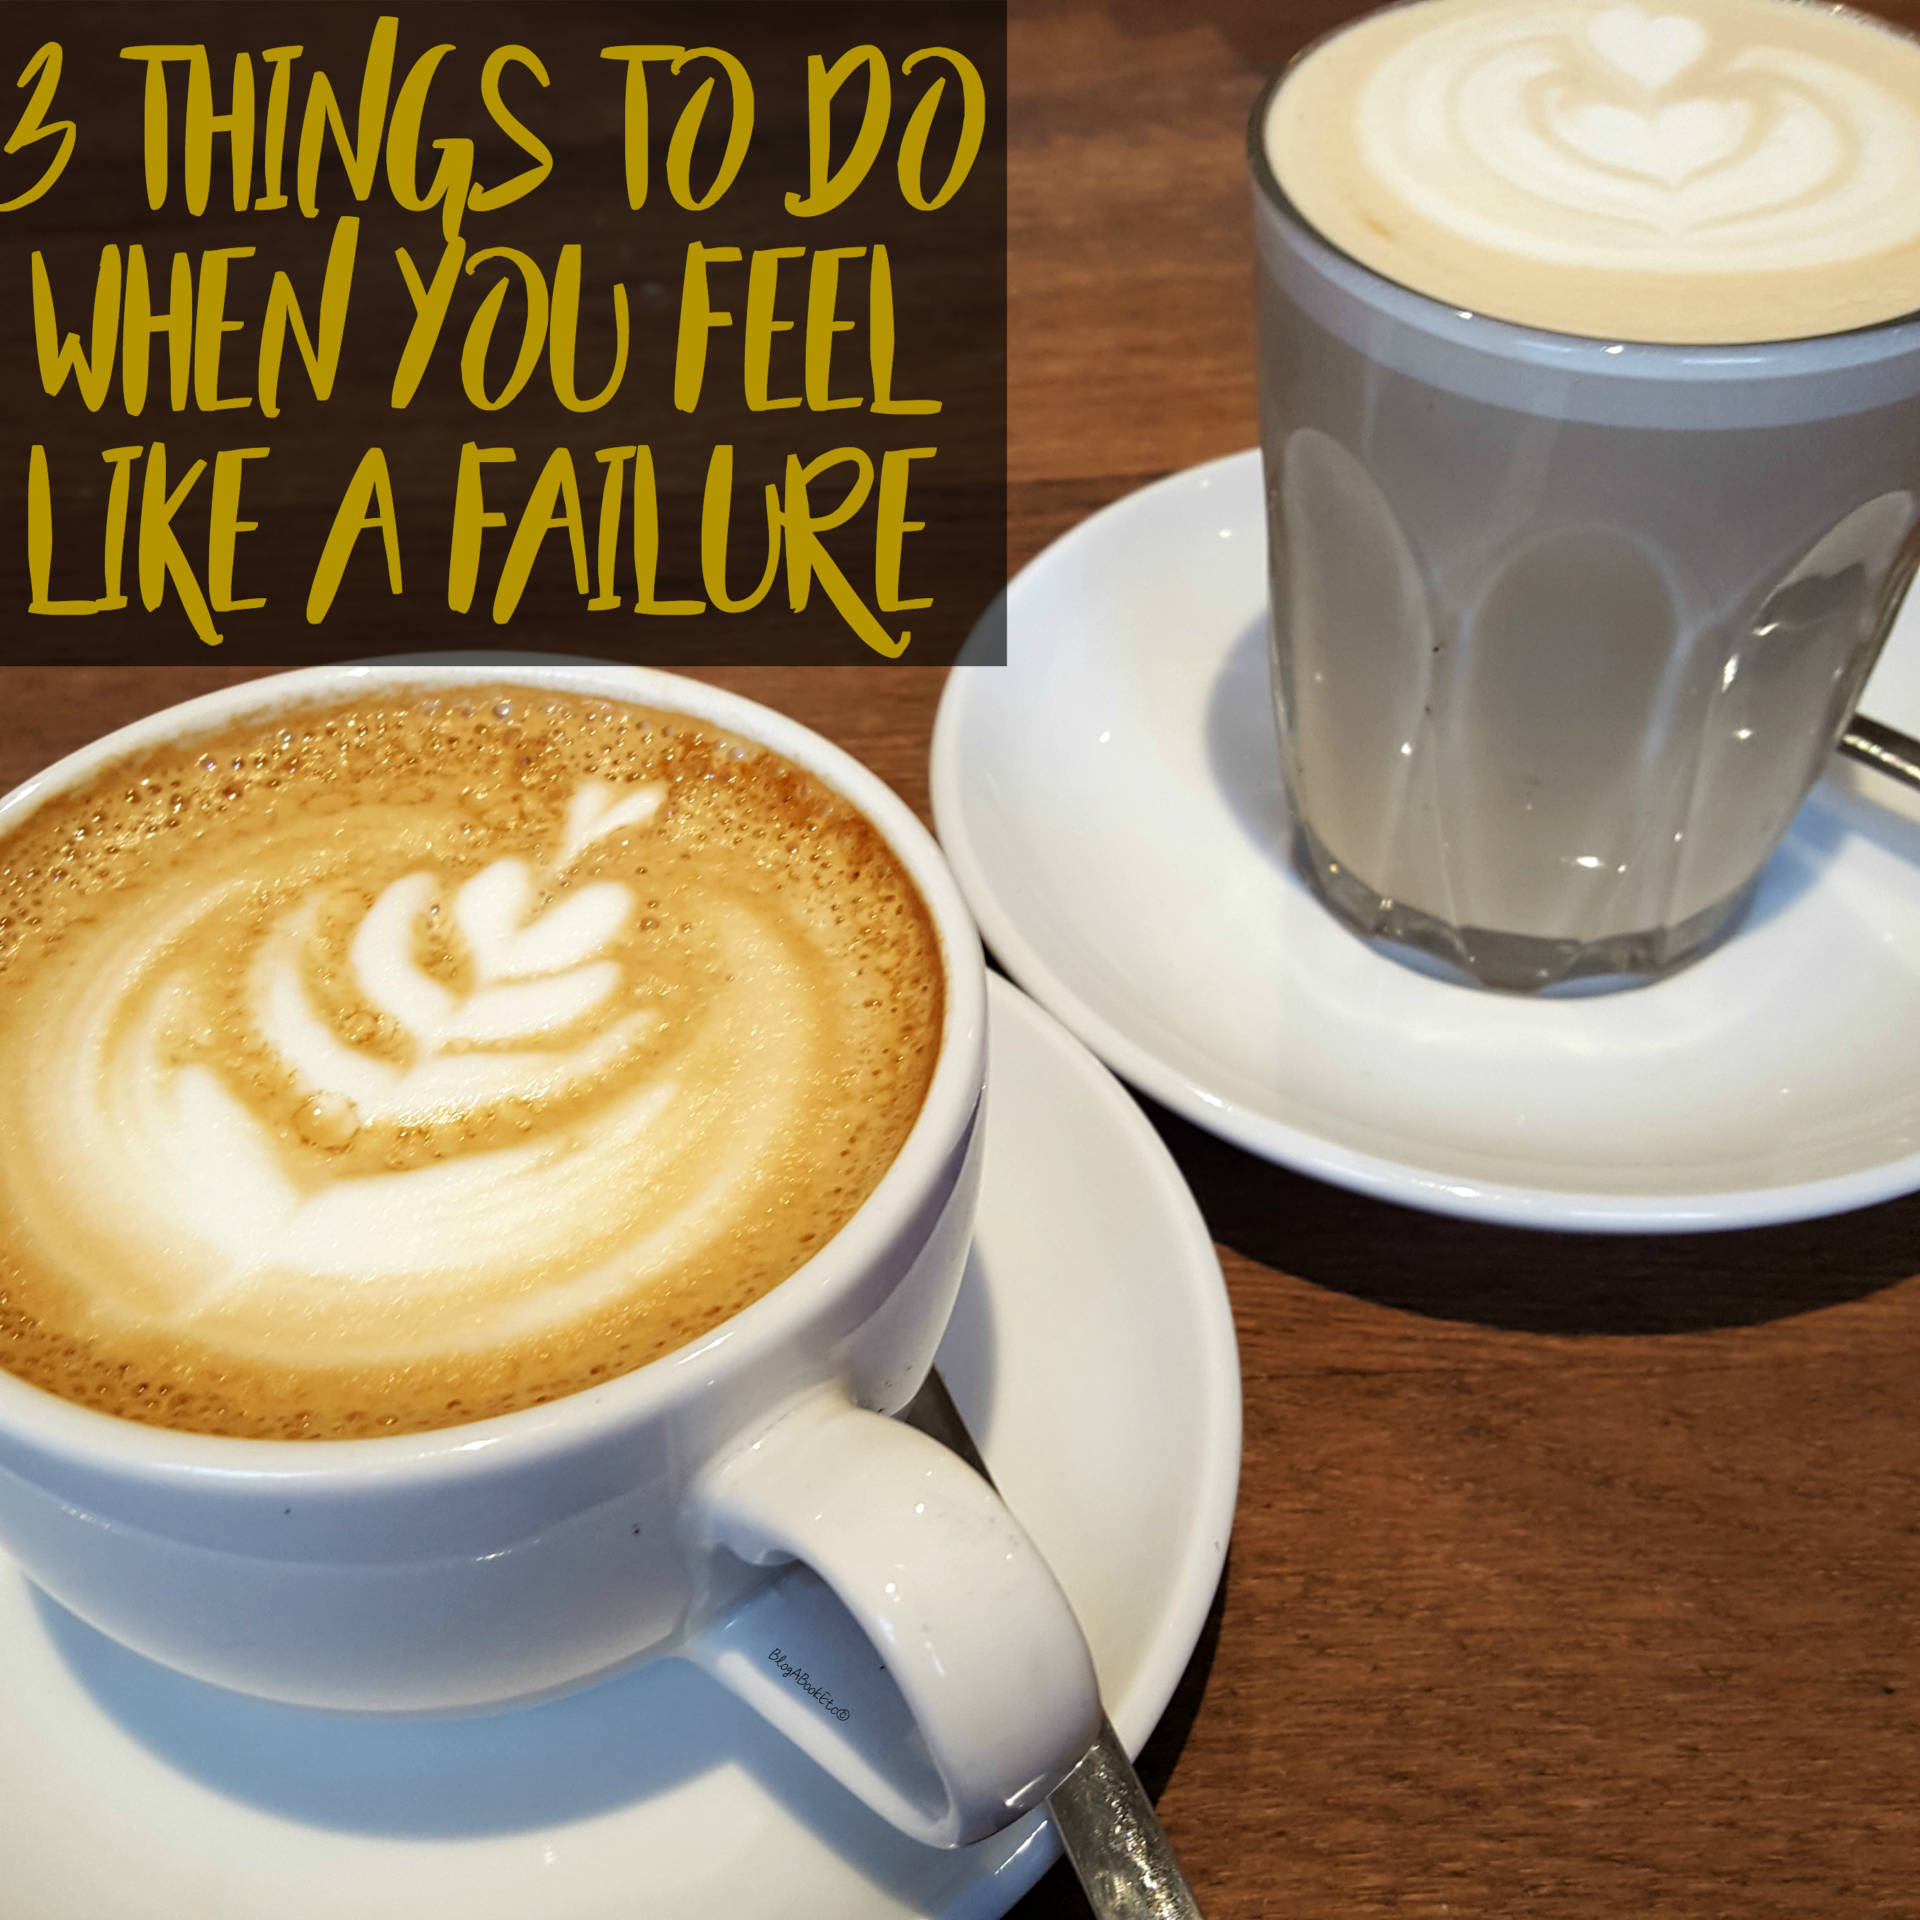 3 Things To Do When You Feel Like A Failure, Coffee, Coffee Time, Department of Coffee Kingston, Department of Coffee, Dept of Coffee, Latte Art, Latte, Cappuccino, Milk, Soy Milk, Kingston, London, Life, Lifestyle, Blogger, Blog A Book Etc, Fay